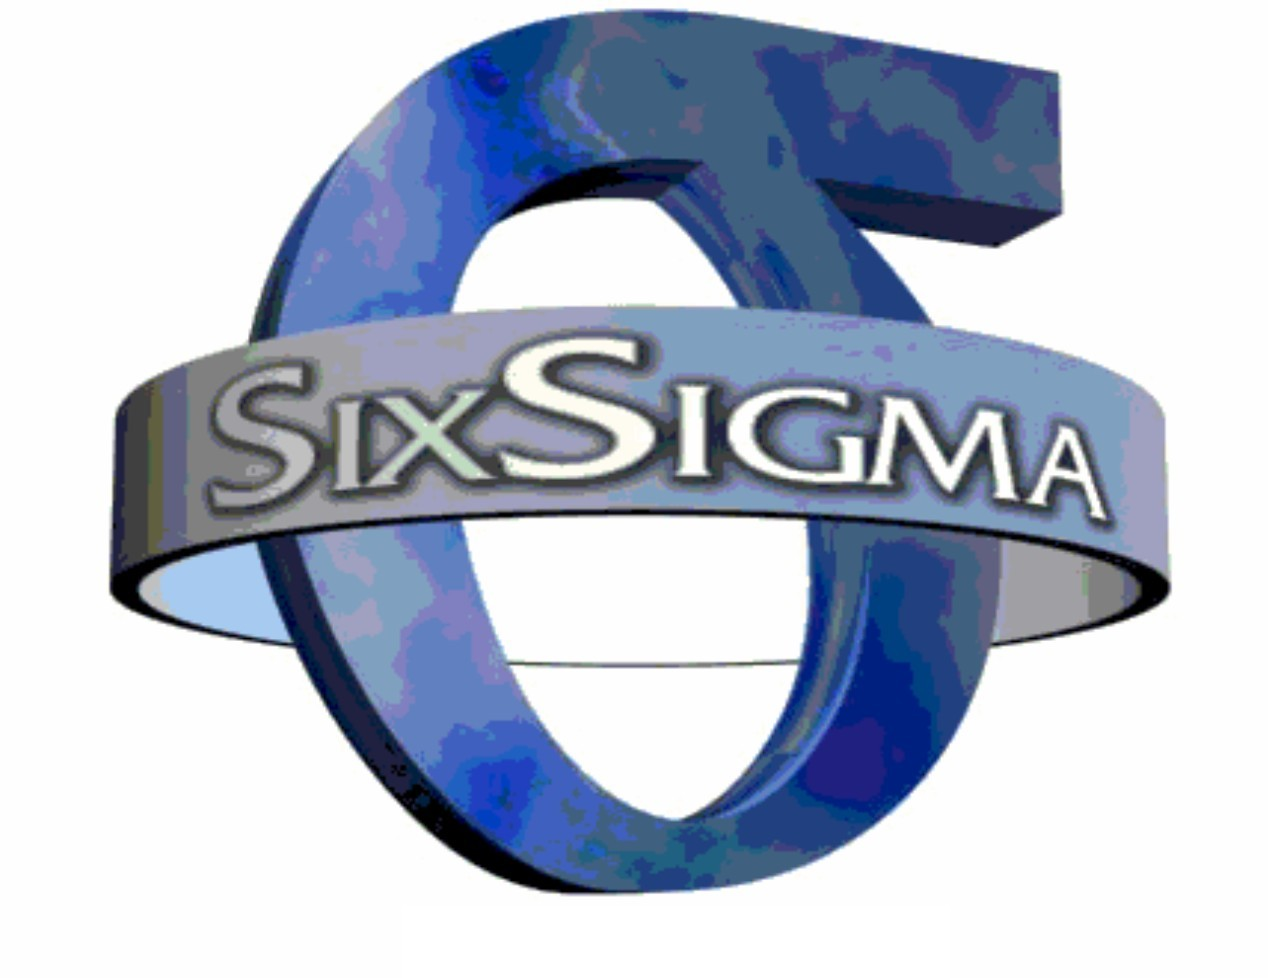 Six sigma problem solving approach